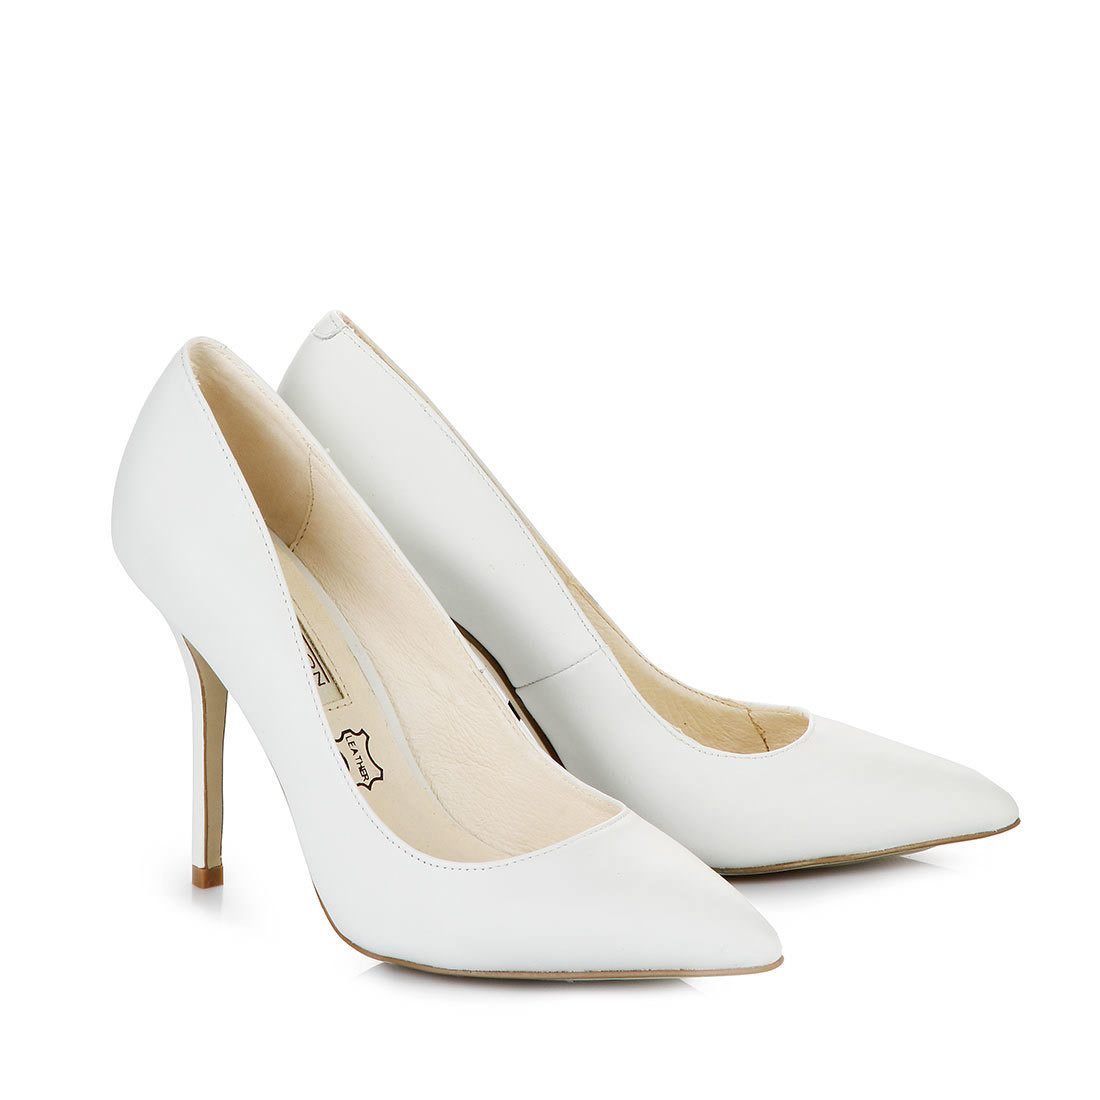 buffalo bridal shoes in white buy online in buffalo online shop buffalo. Black Bedroom Furniture Sets. Home Design Ideas